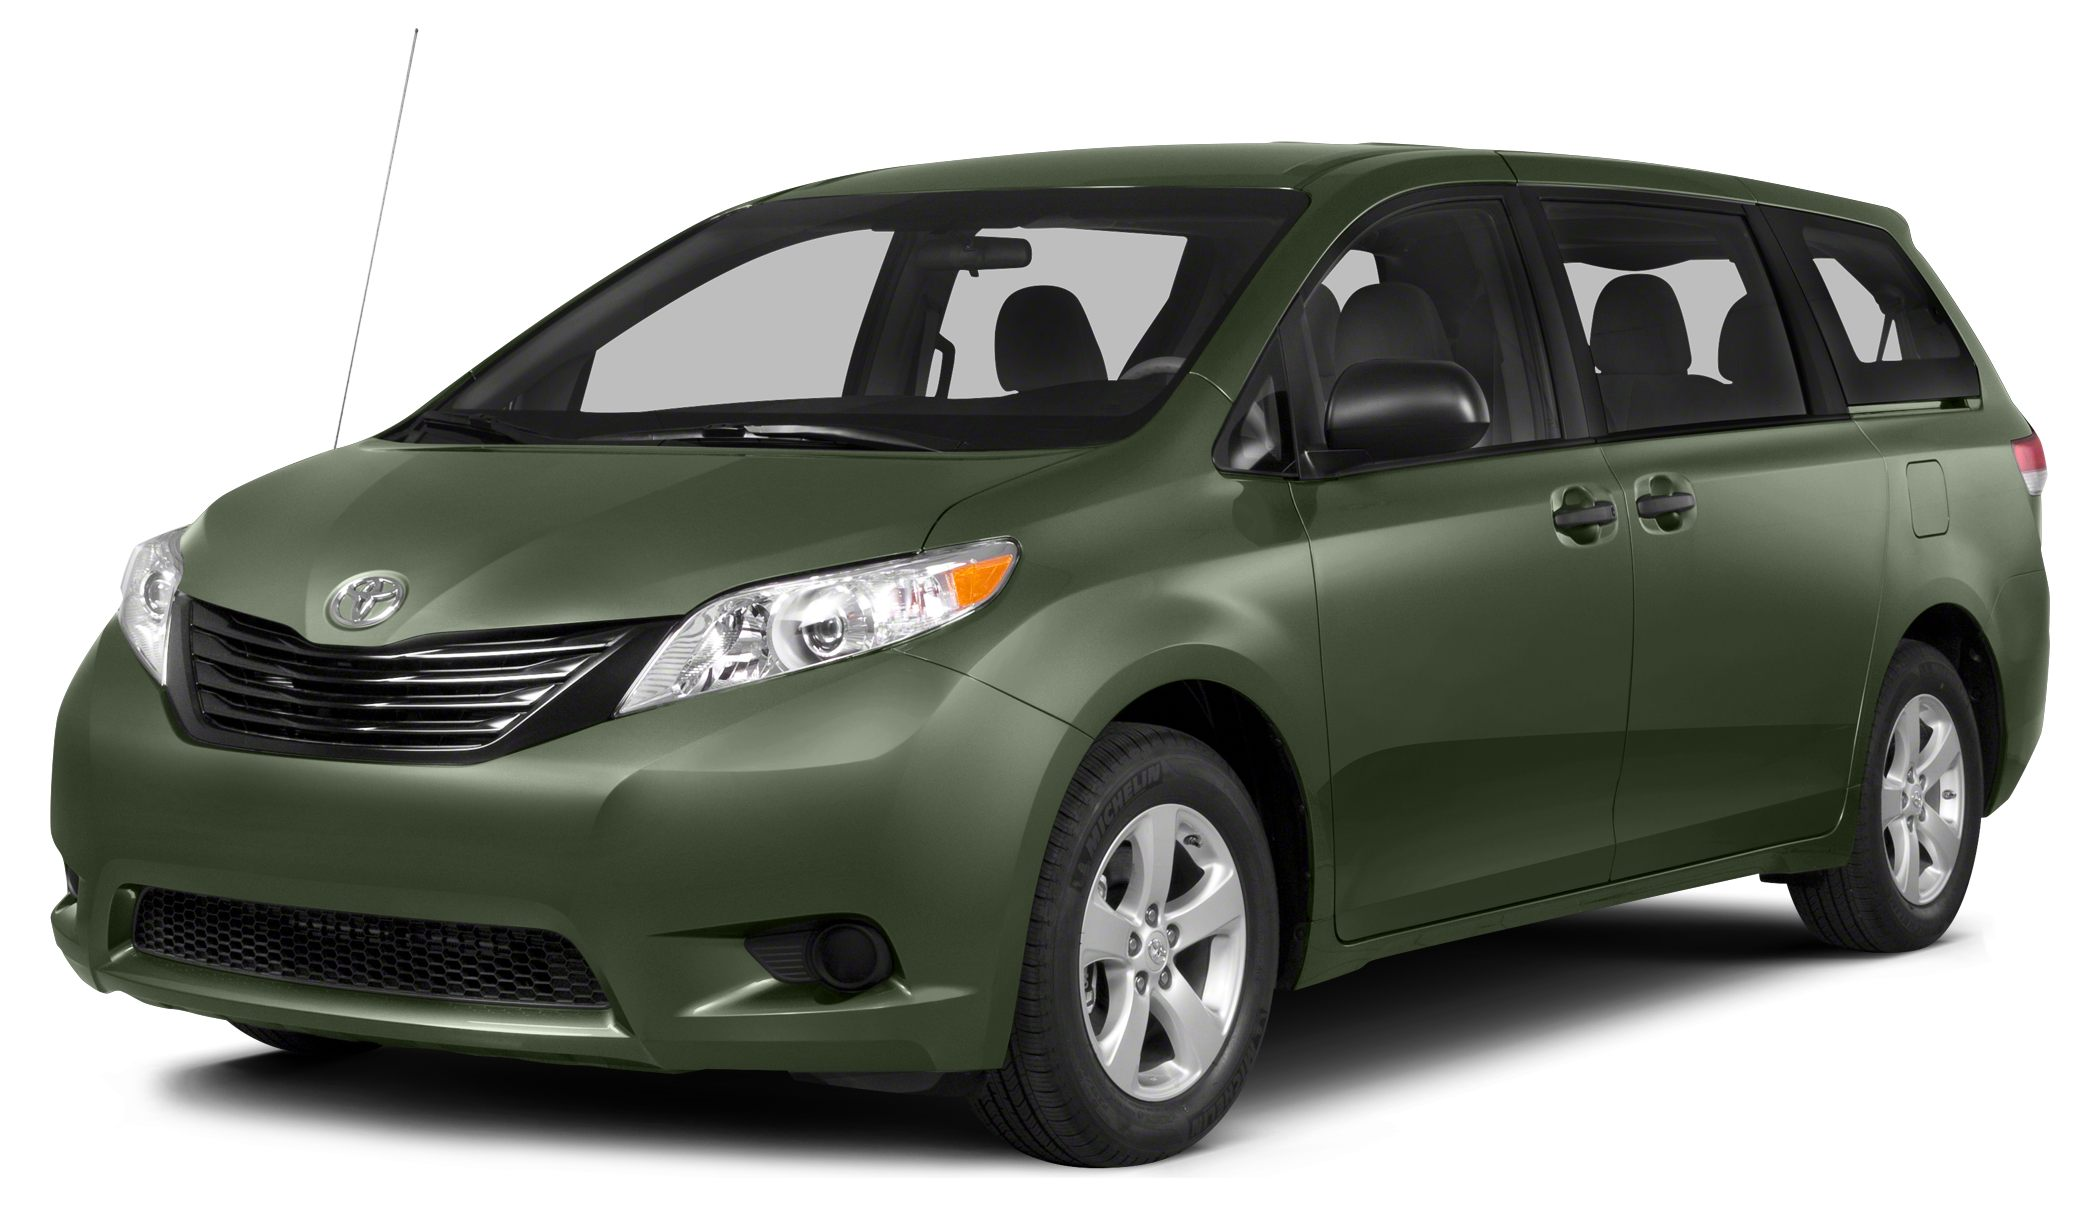 2014 Toyota Sienna XLE 7 Passenger 1100 below Kelley Blue Book CARFAX 1-Owner LOW MILES - 306